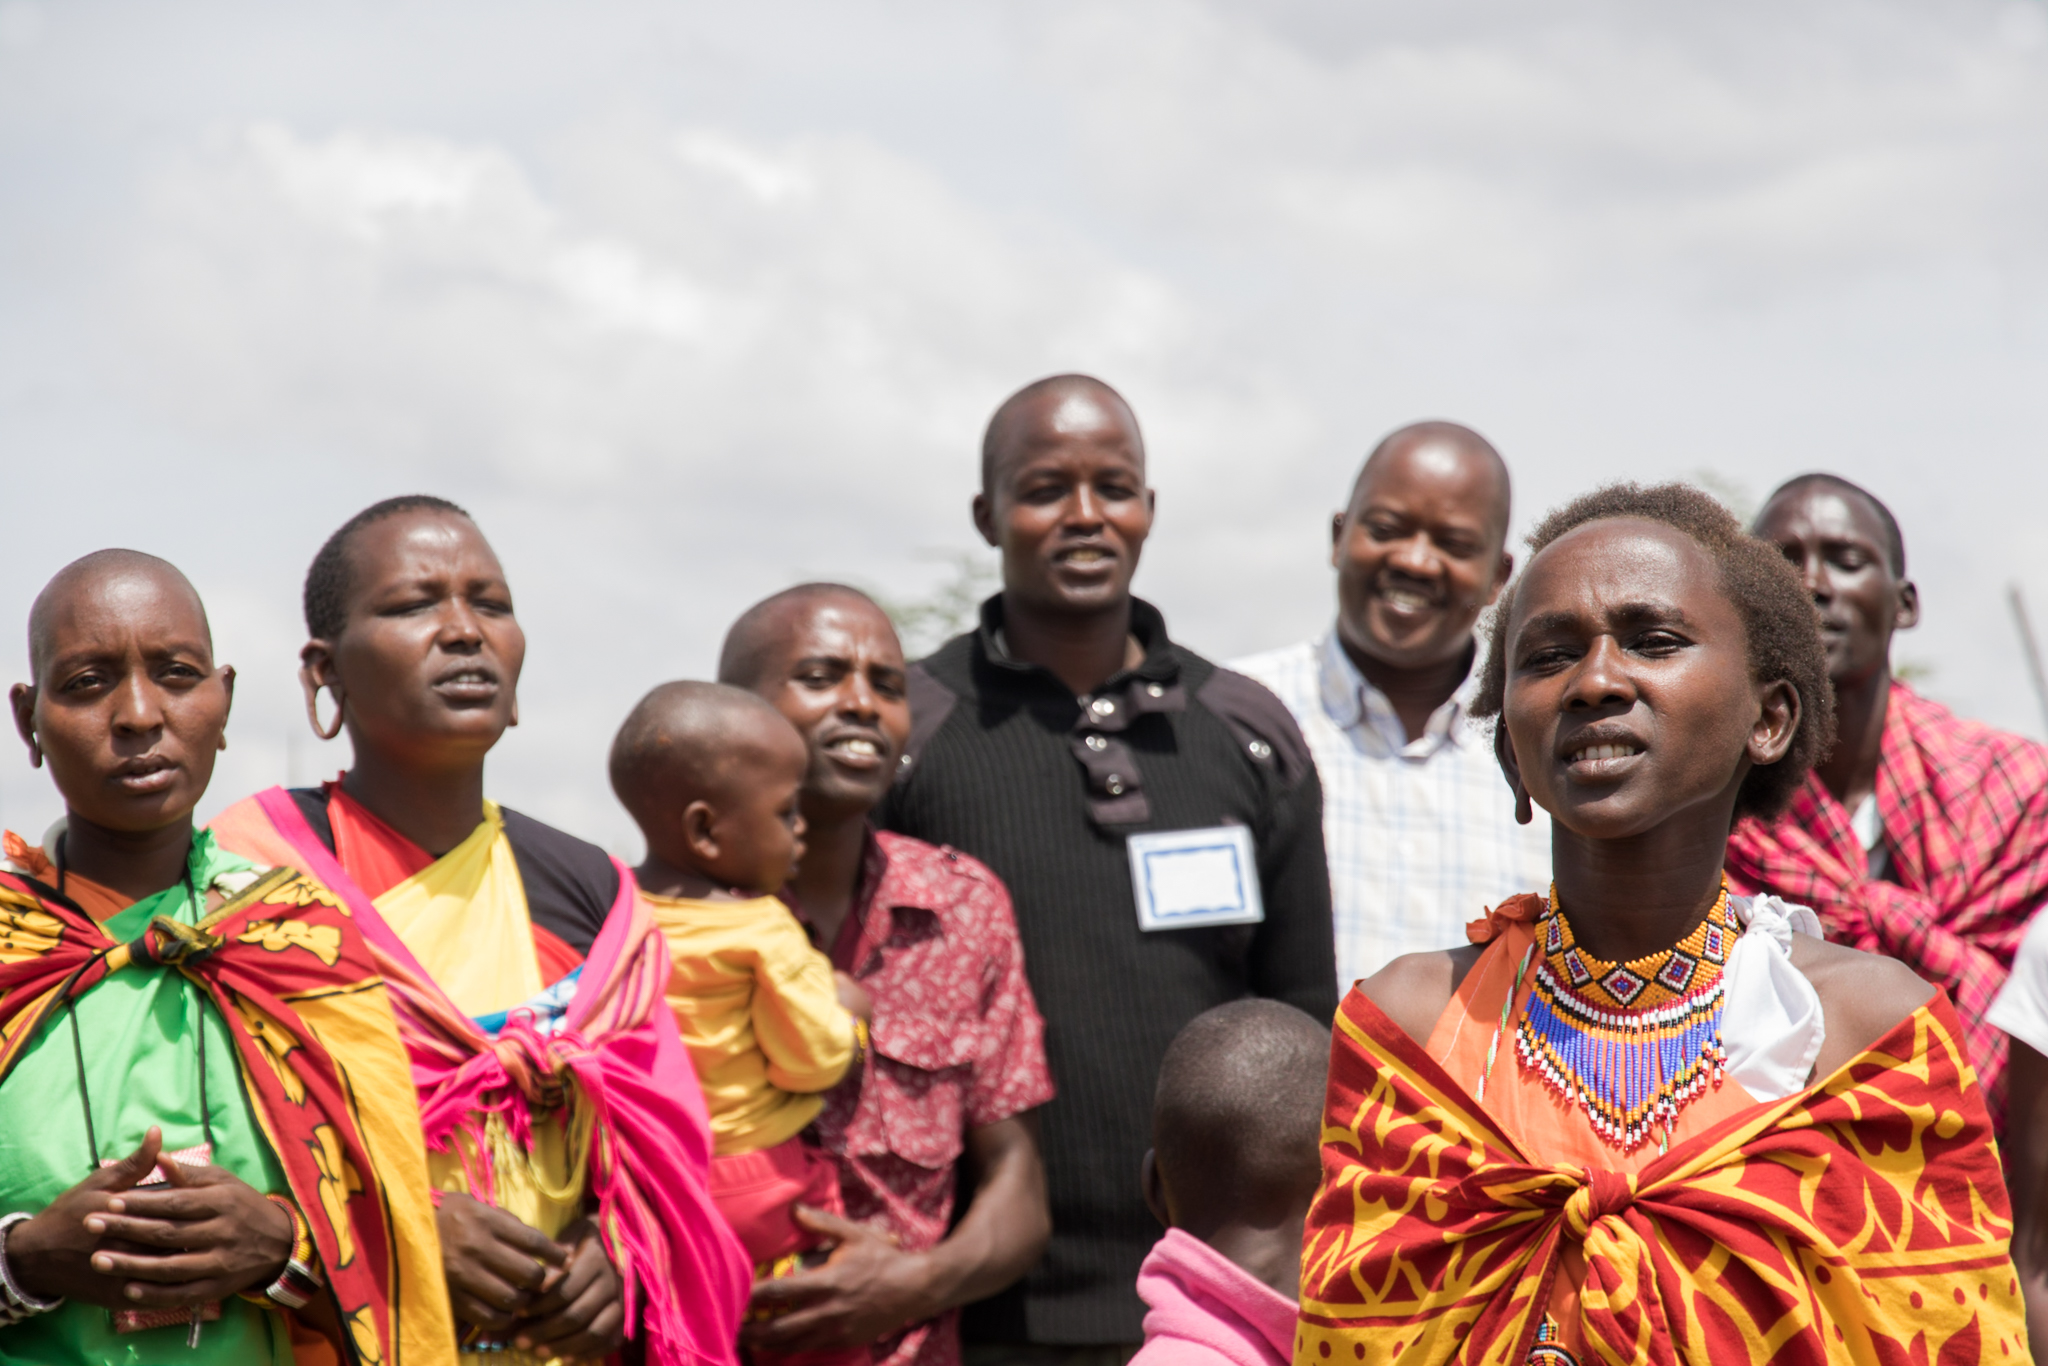 kenya_maasai_people_singing